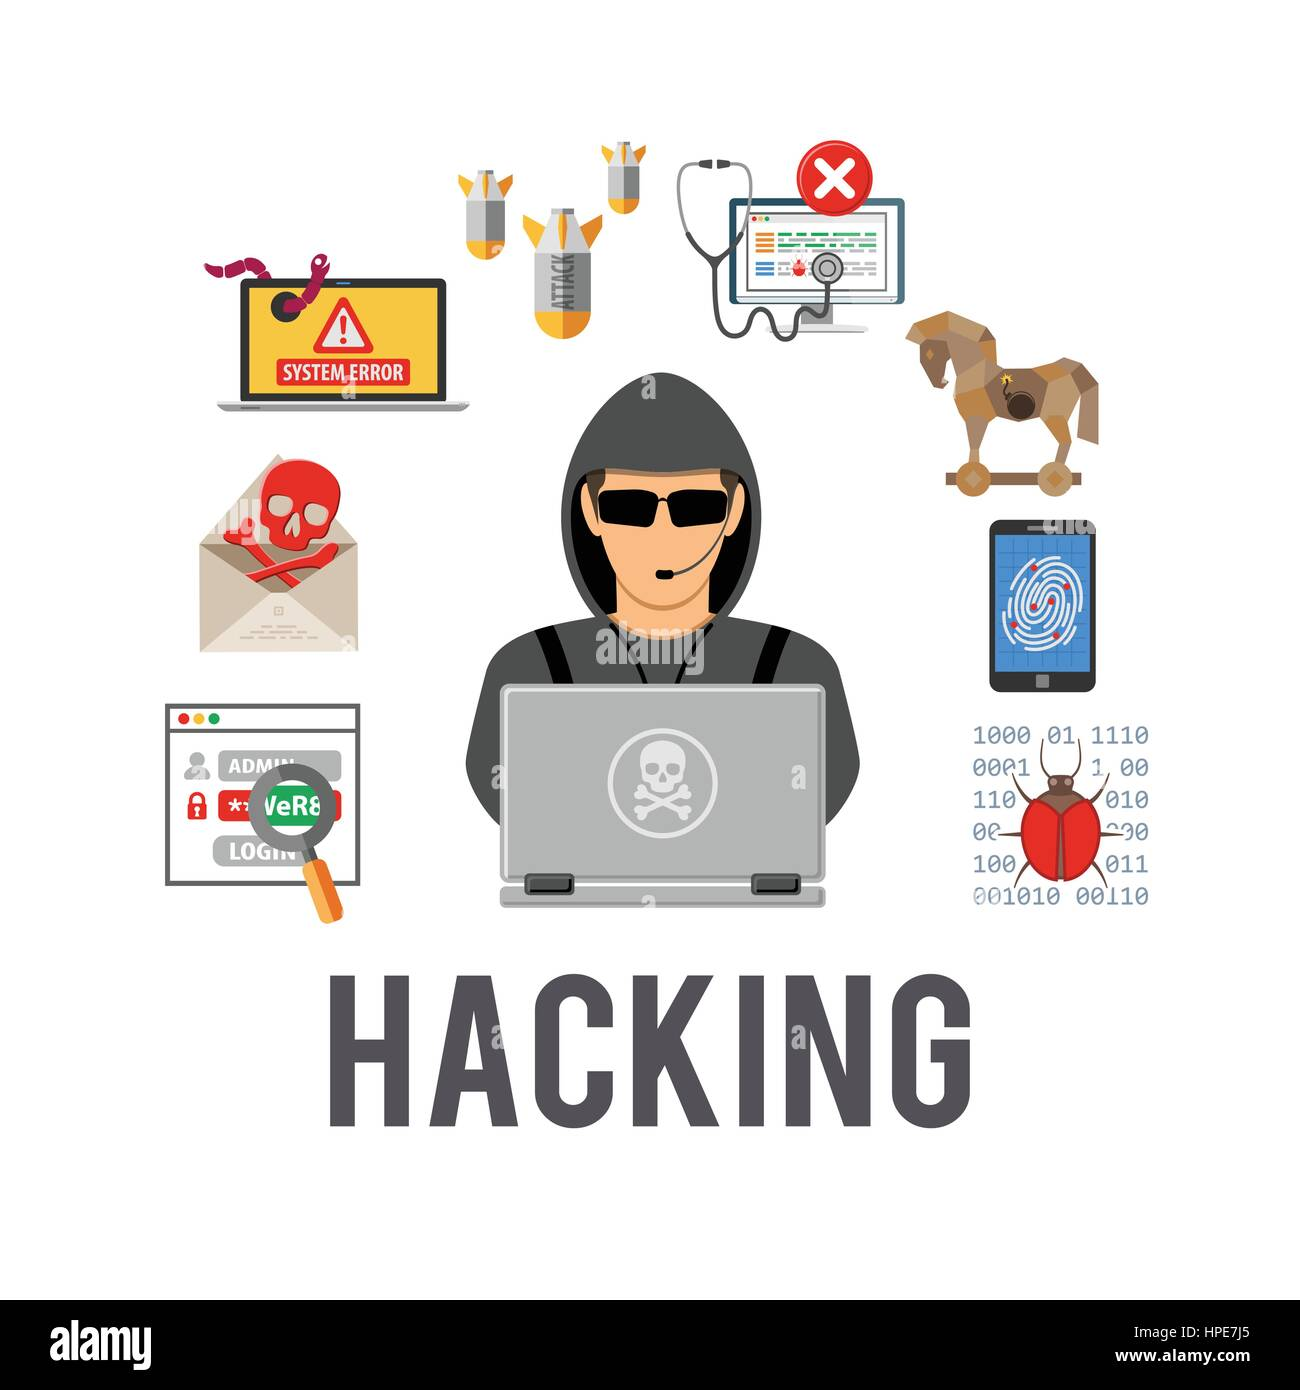 Cyber Crime and Hacking Concept - Stock Image